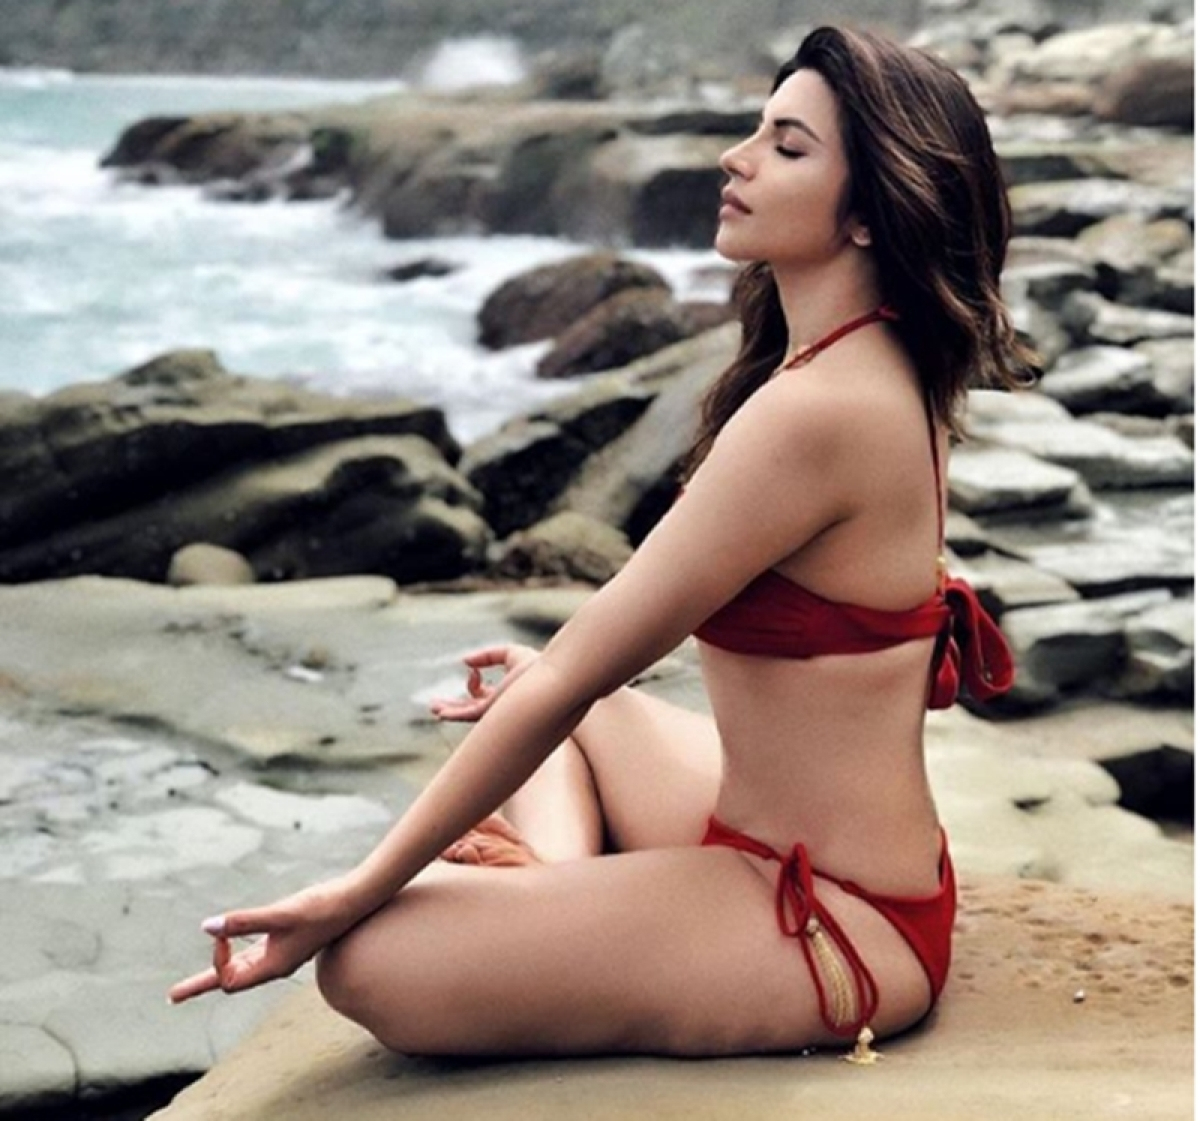 Shama Sikander doing Hot Yoga in bikini is a sight to behold; check out pic